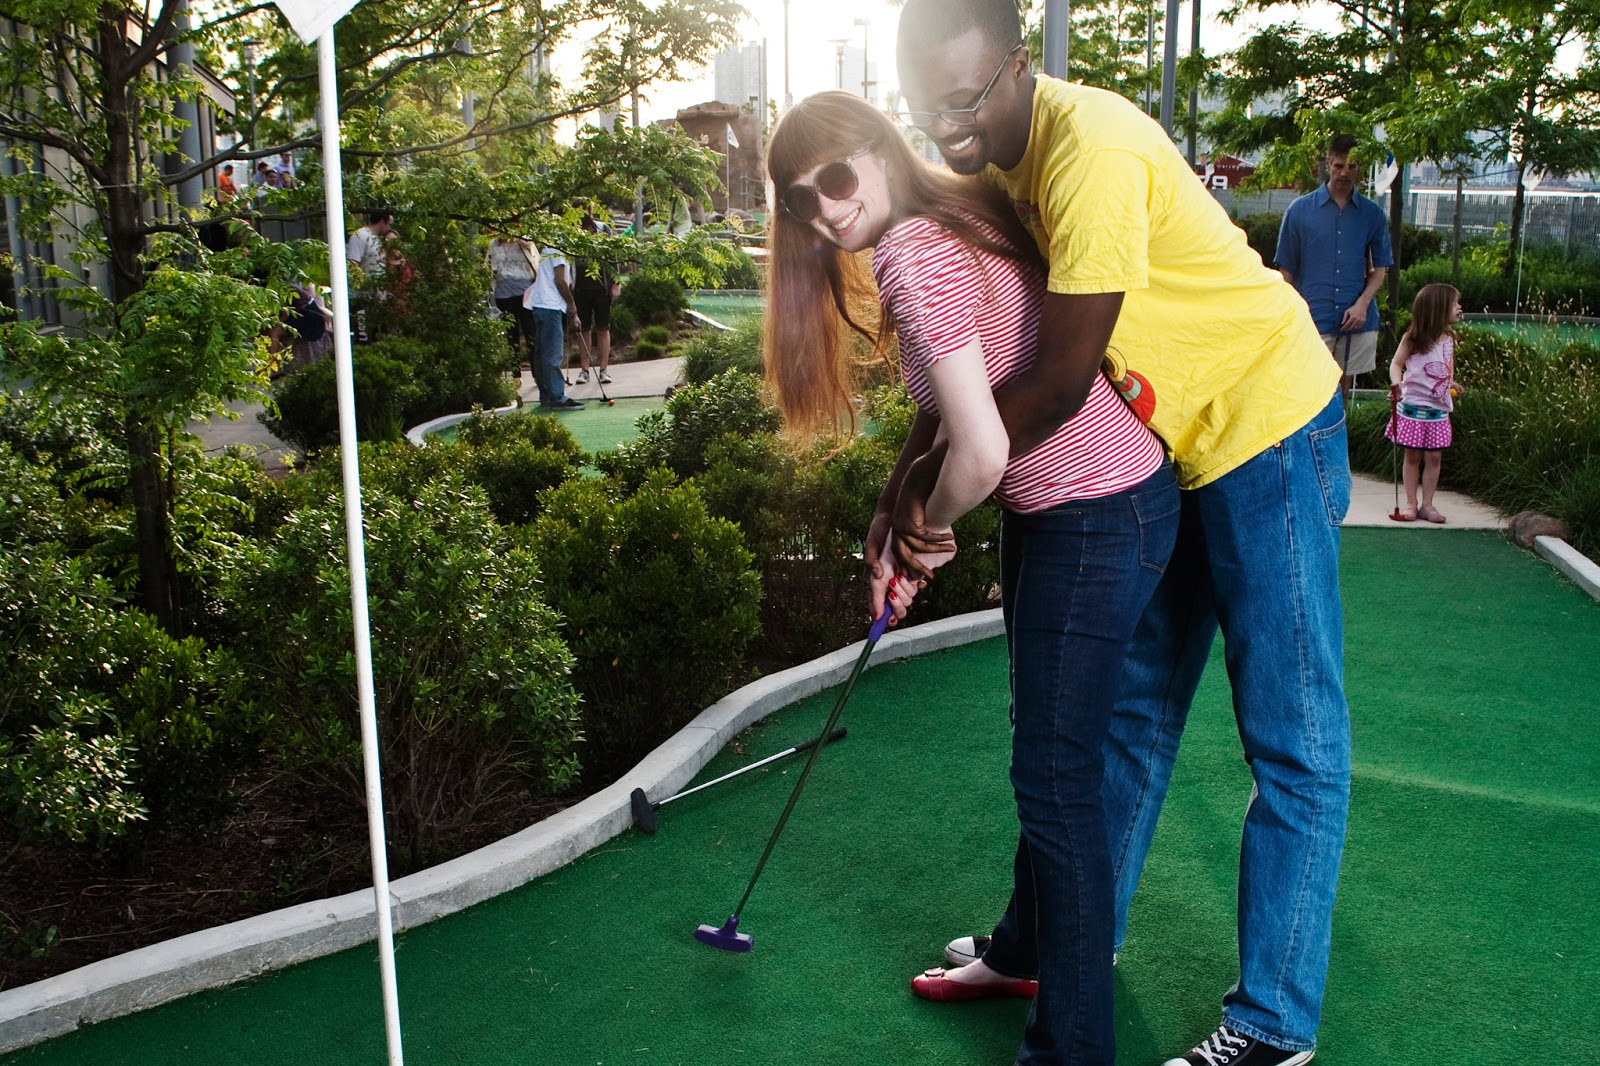 A couple on a mini golf course hold a putter together and hit a golf ball.